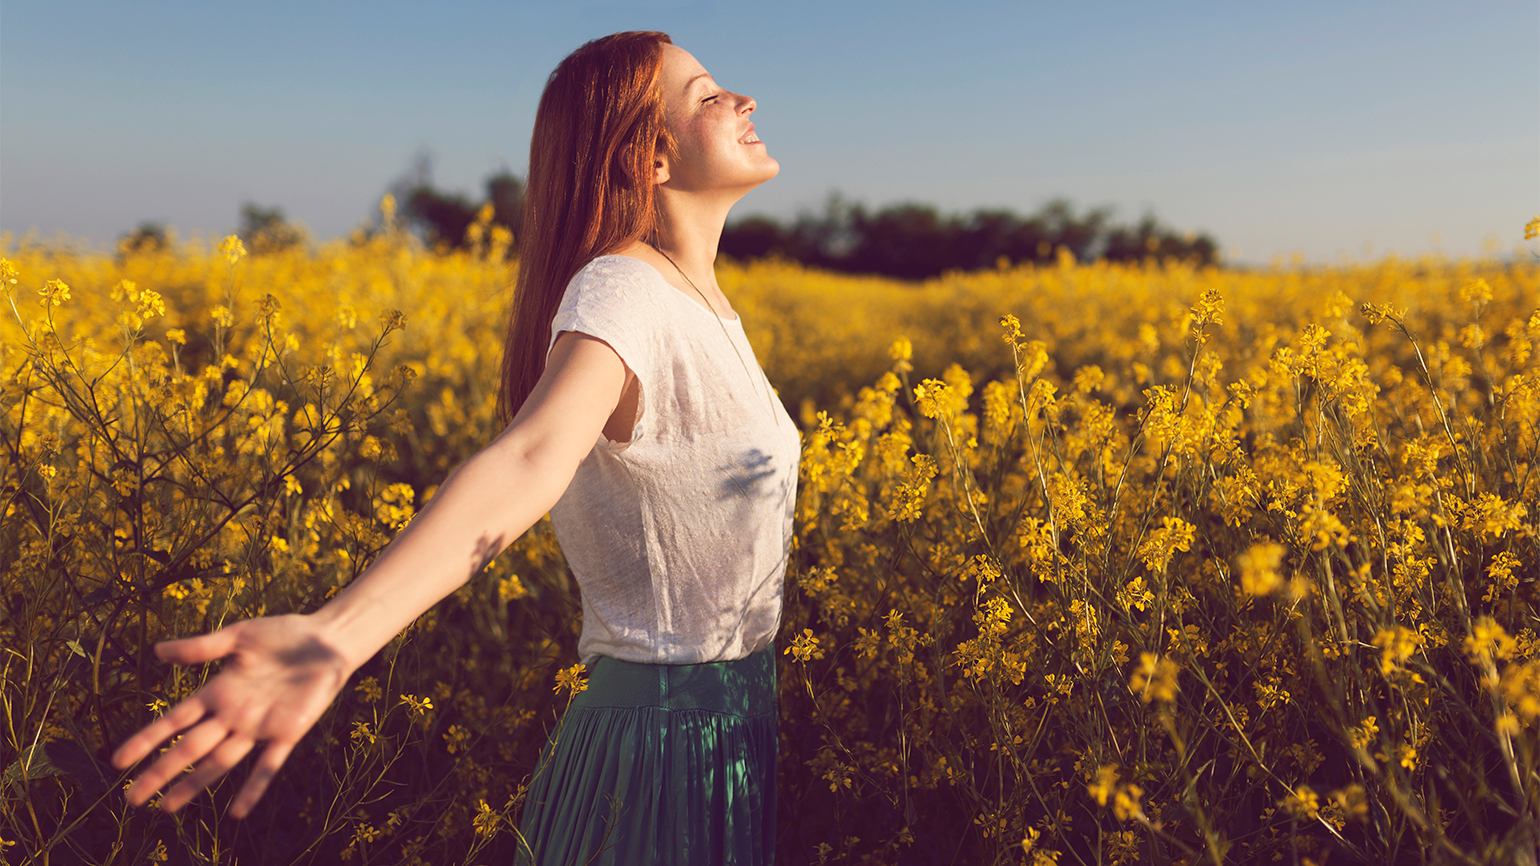 A woman with outstretched arms stands in a field of spring flowers